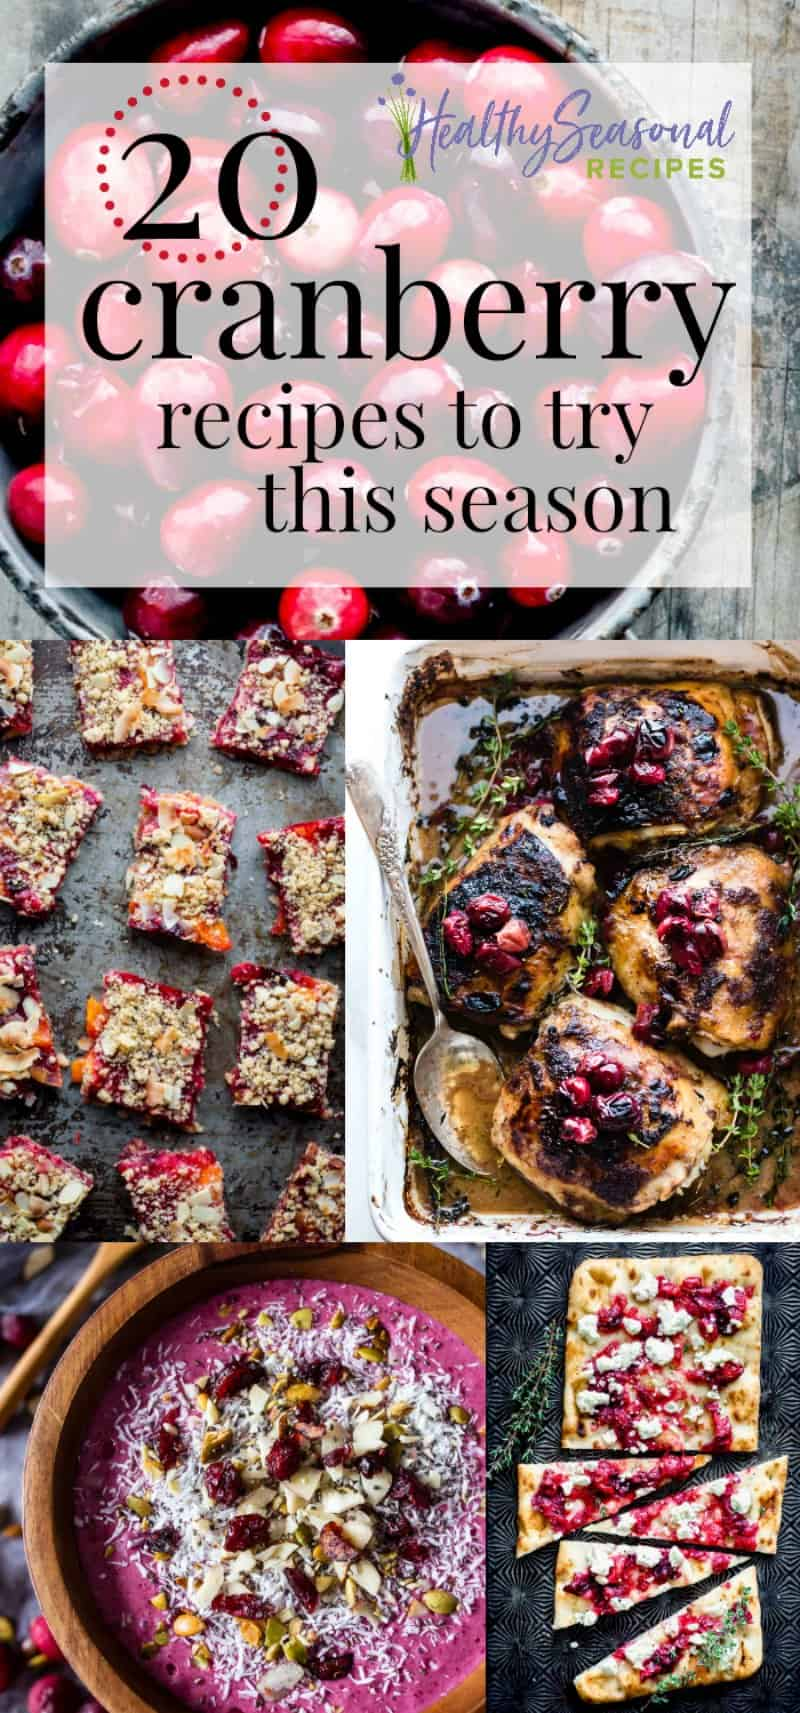 20 Cranberry Recipes to try this Season, plus tips on how to buy cranberries, how to store them and how to cook with fresh cranberries. #cranberries